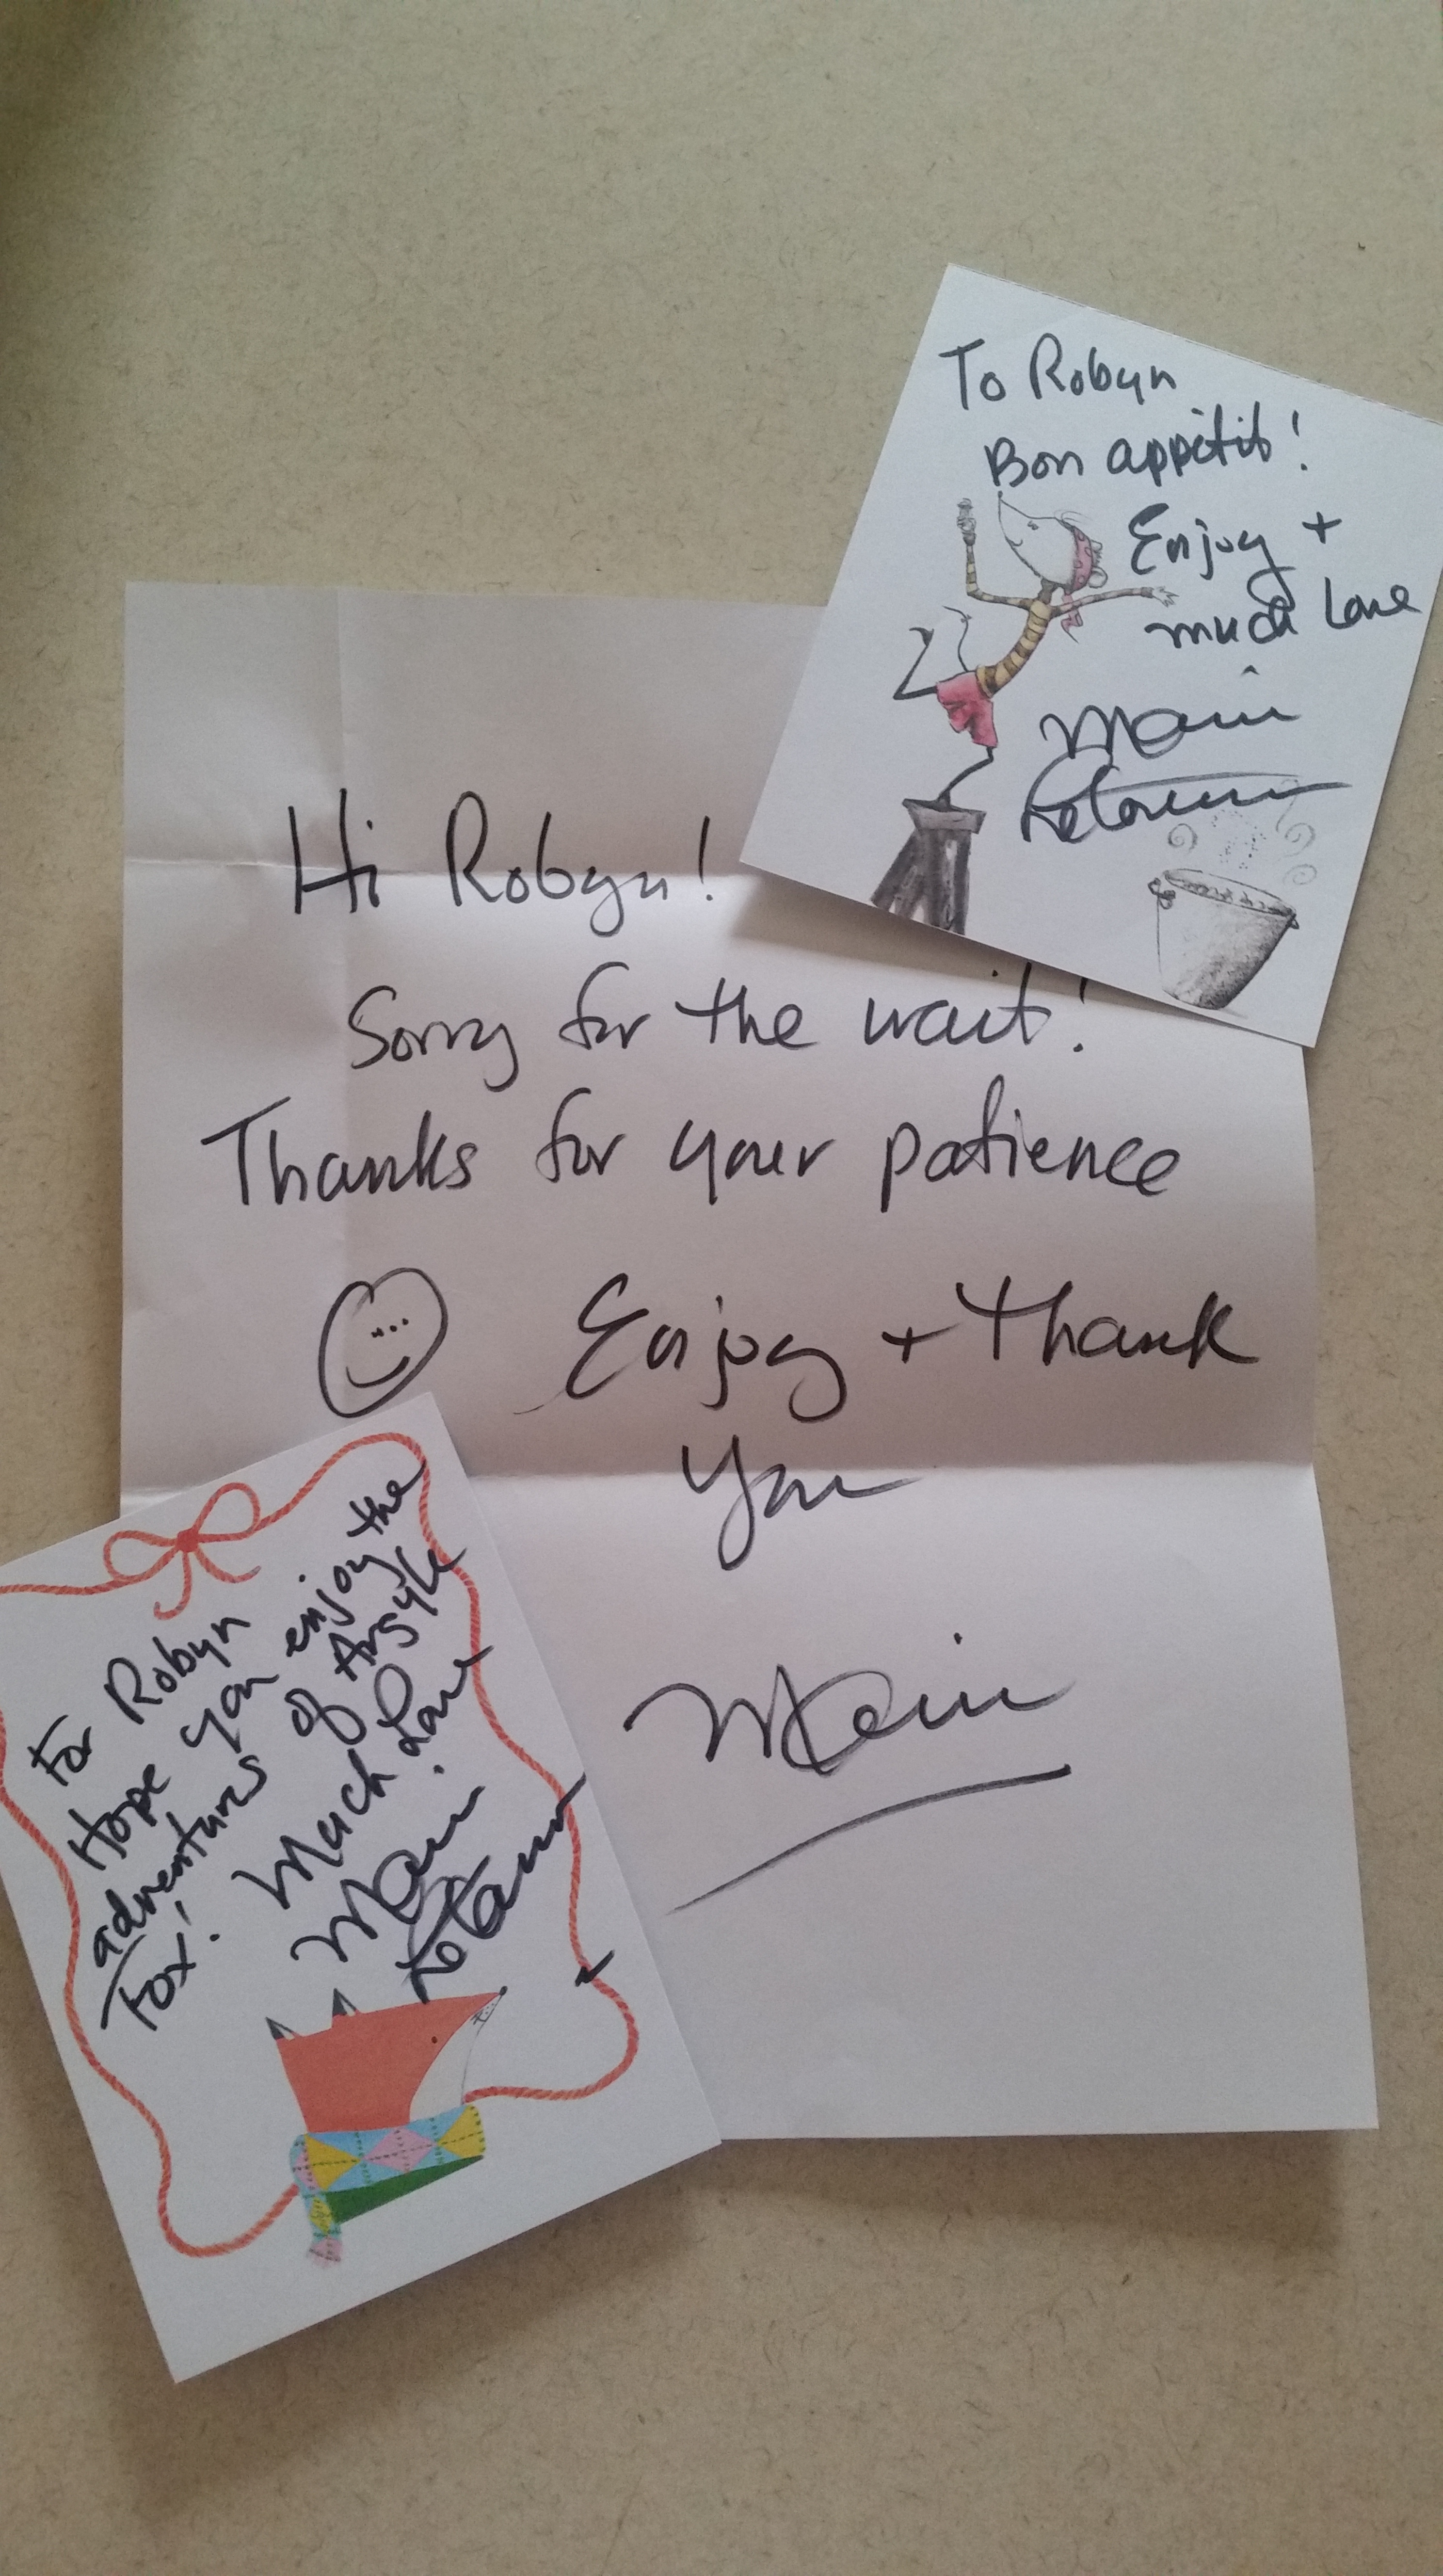 Mail From Marie Therobynbirdsnest border=